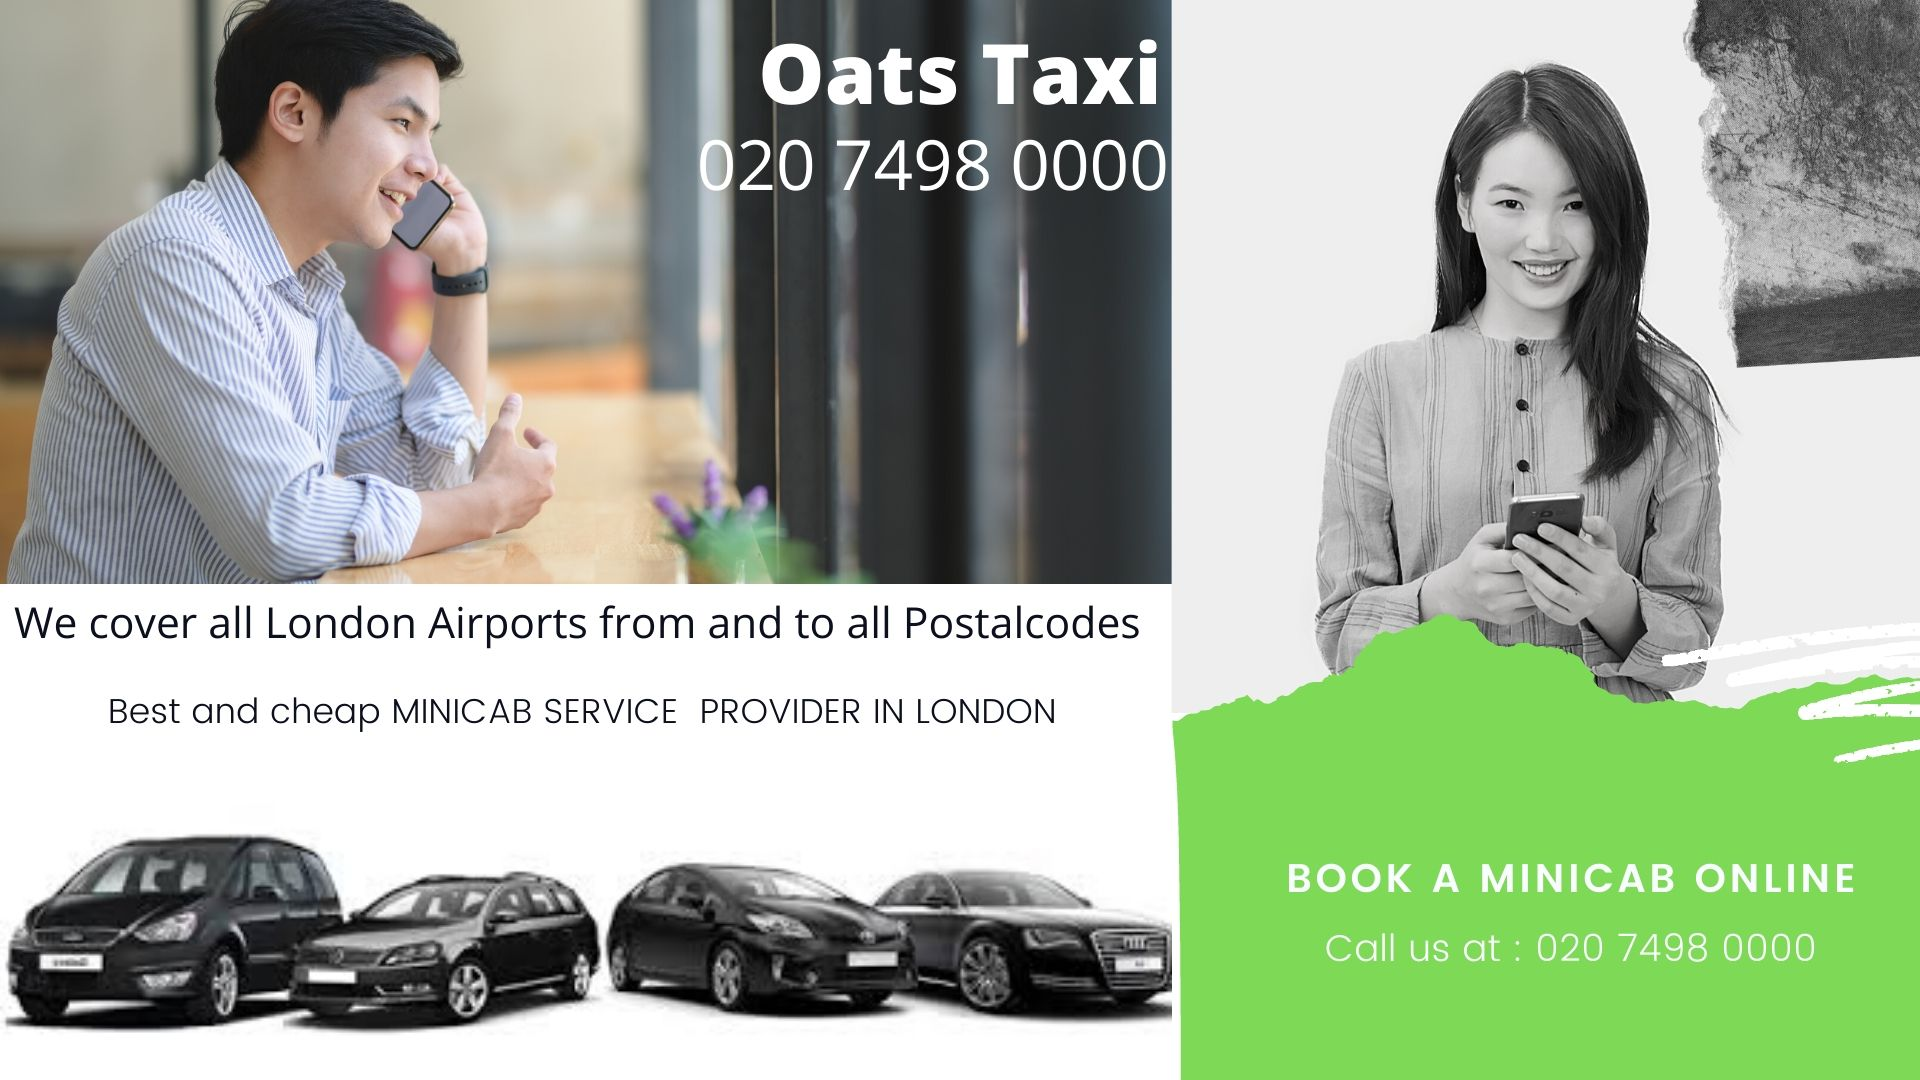 Minicab Office Near INGRAVE STREET, Battersea SW11, Minicab From Battersea SW11 To Gatwick Airport